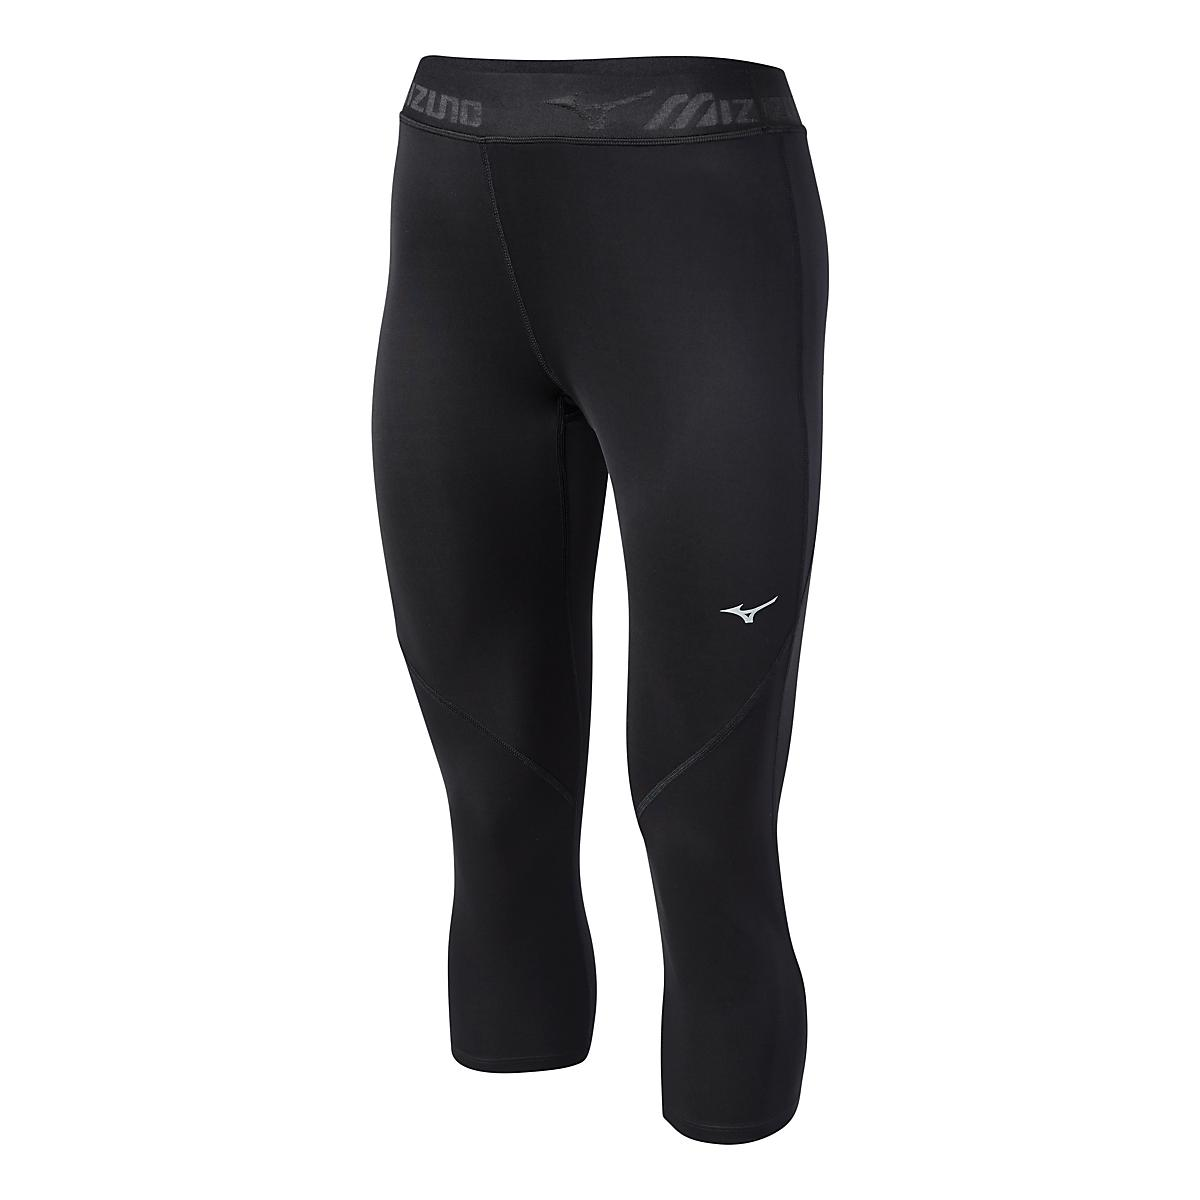 02f40f1d4a Womens Mizuno Impulse Core 3/4 Tights & Leggings Pants at Road Runner Sports